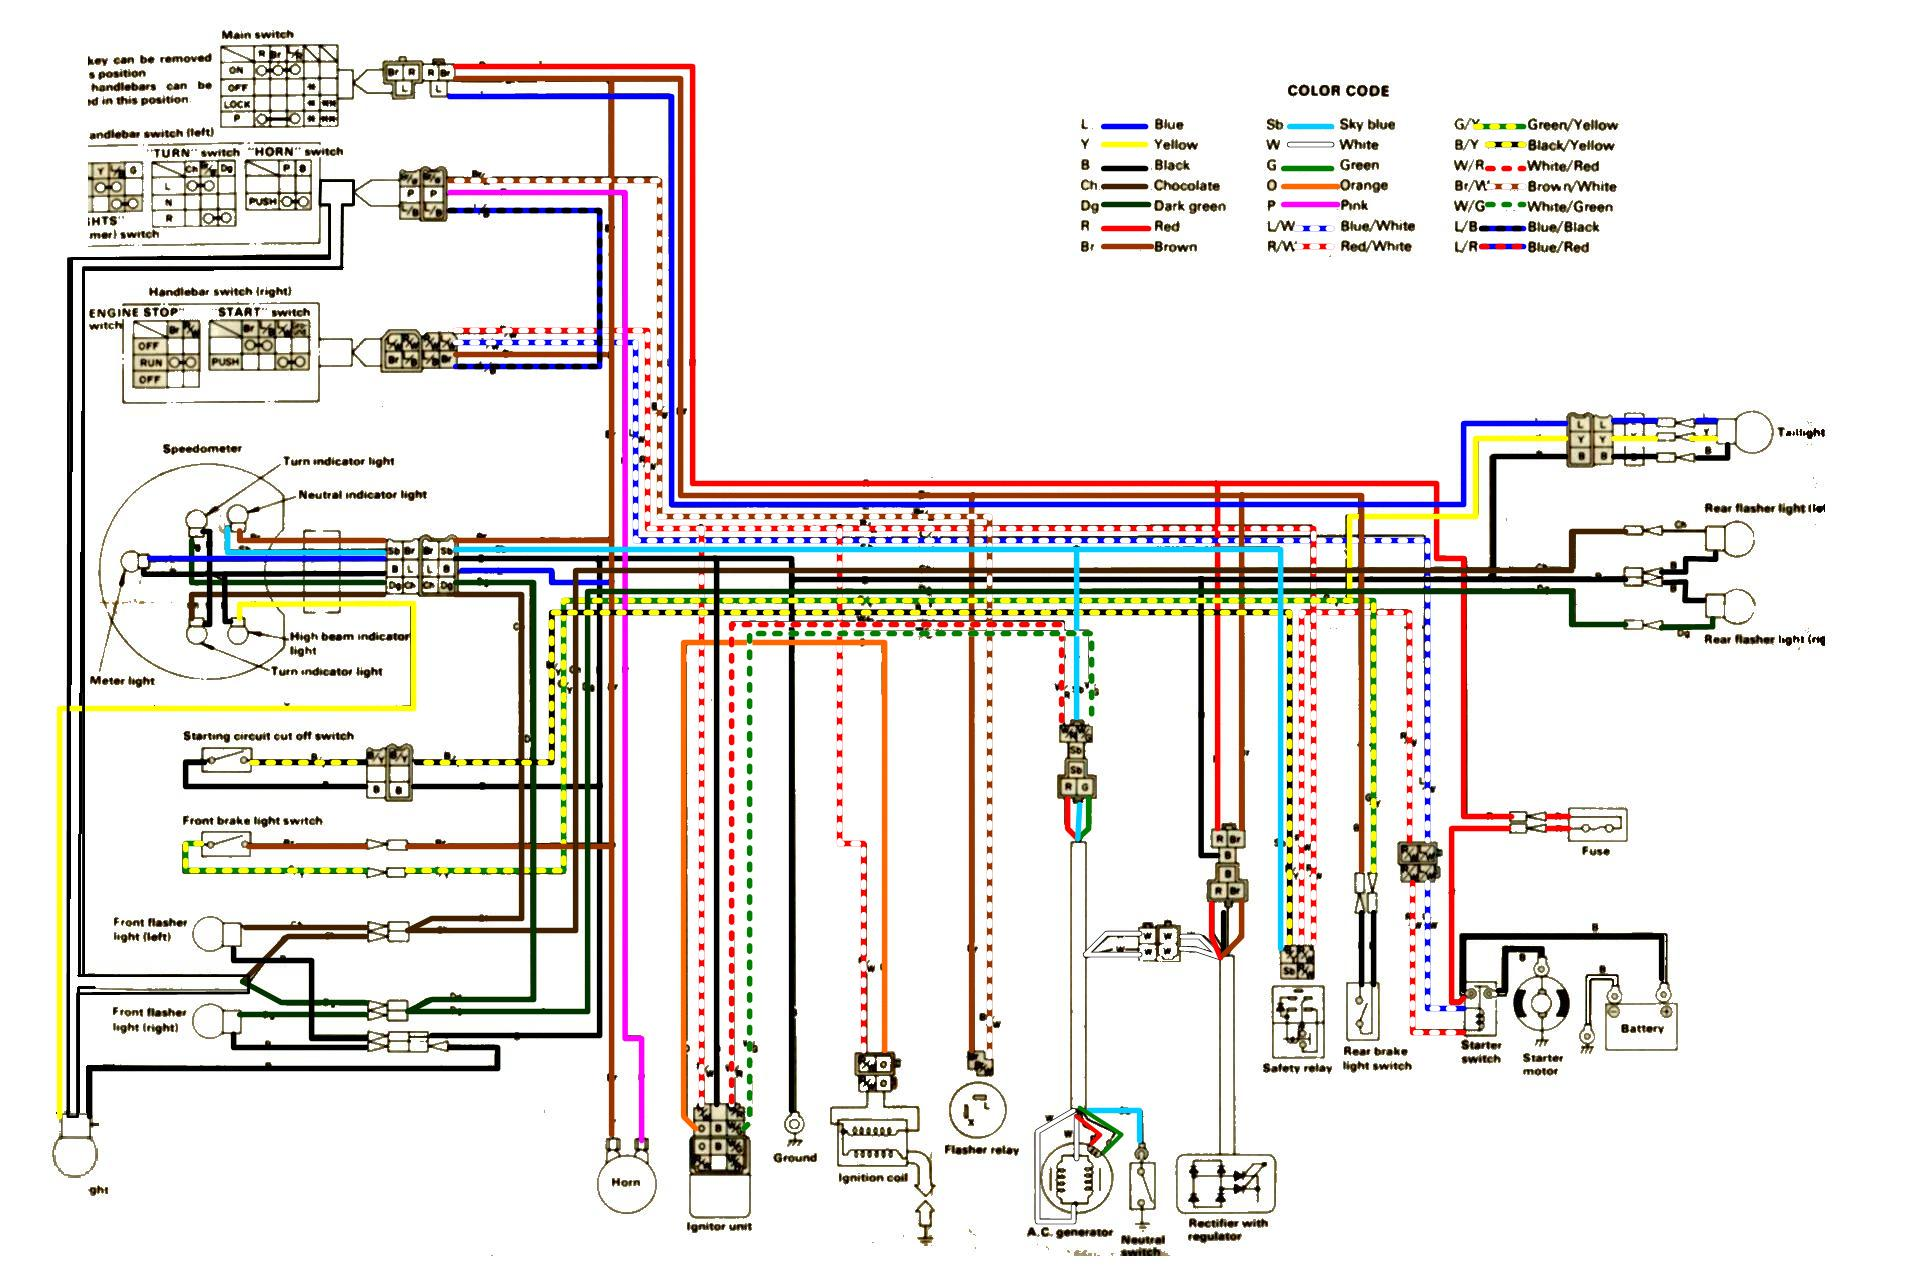 ... \u2022 Rh Itgenergy Co At Hyosung Wiring Diagram Gt Efi Wiring Diagram  Colour Overlay Rh Rokcixt Tripa Co 250cc Scooter Wiring For China Xingyue  Scooter ...